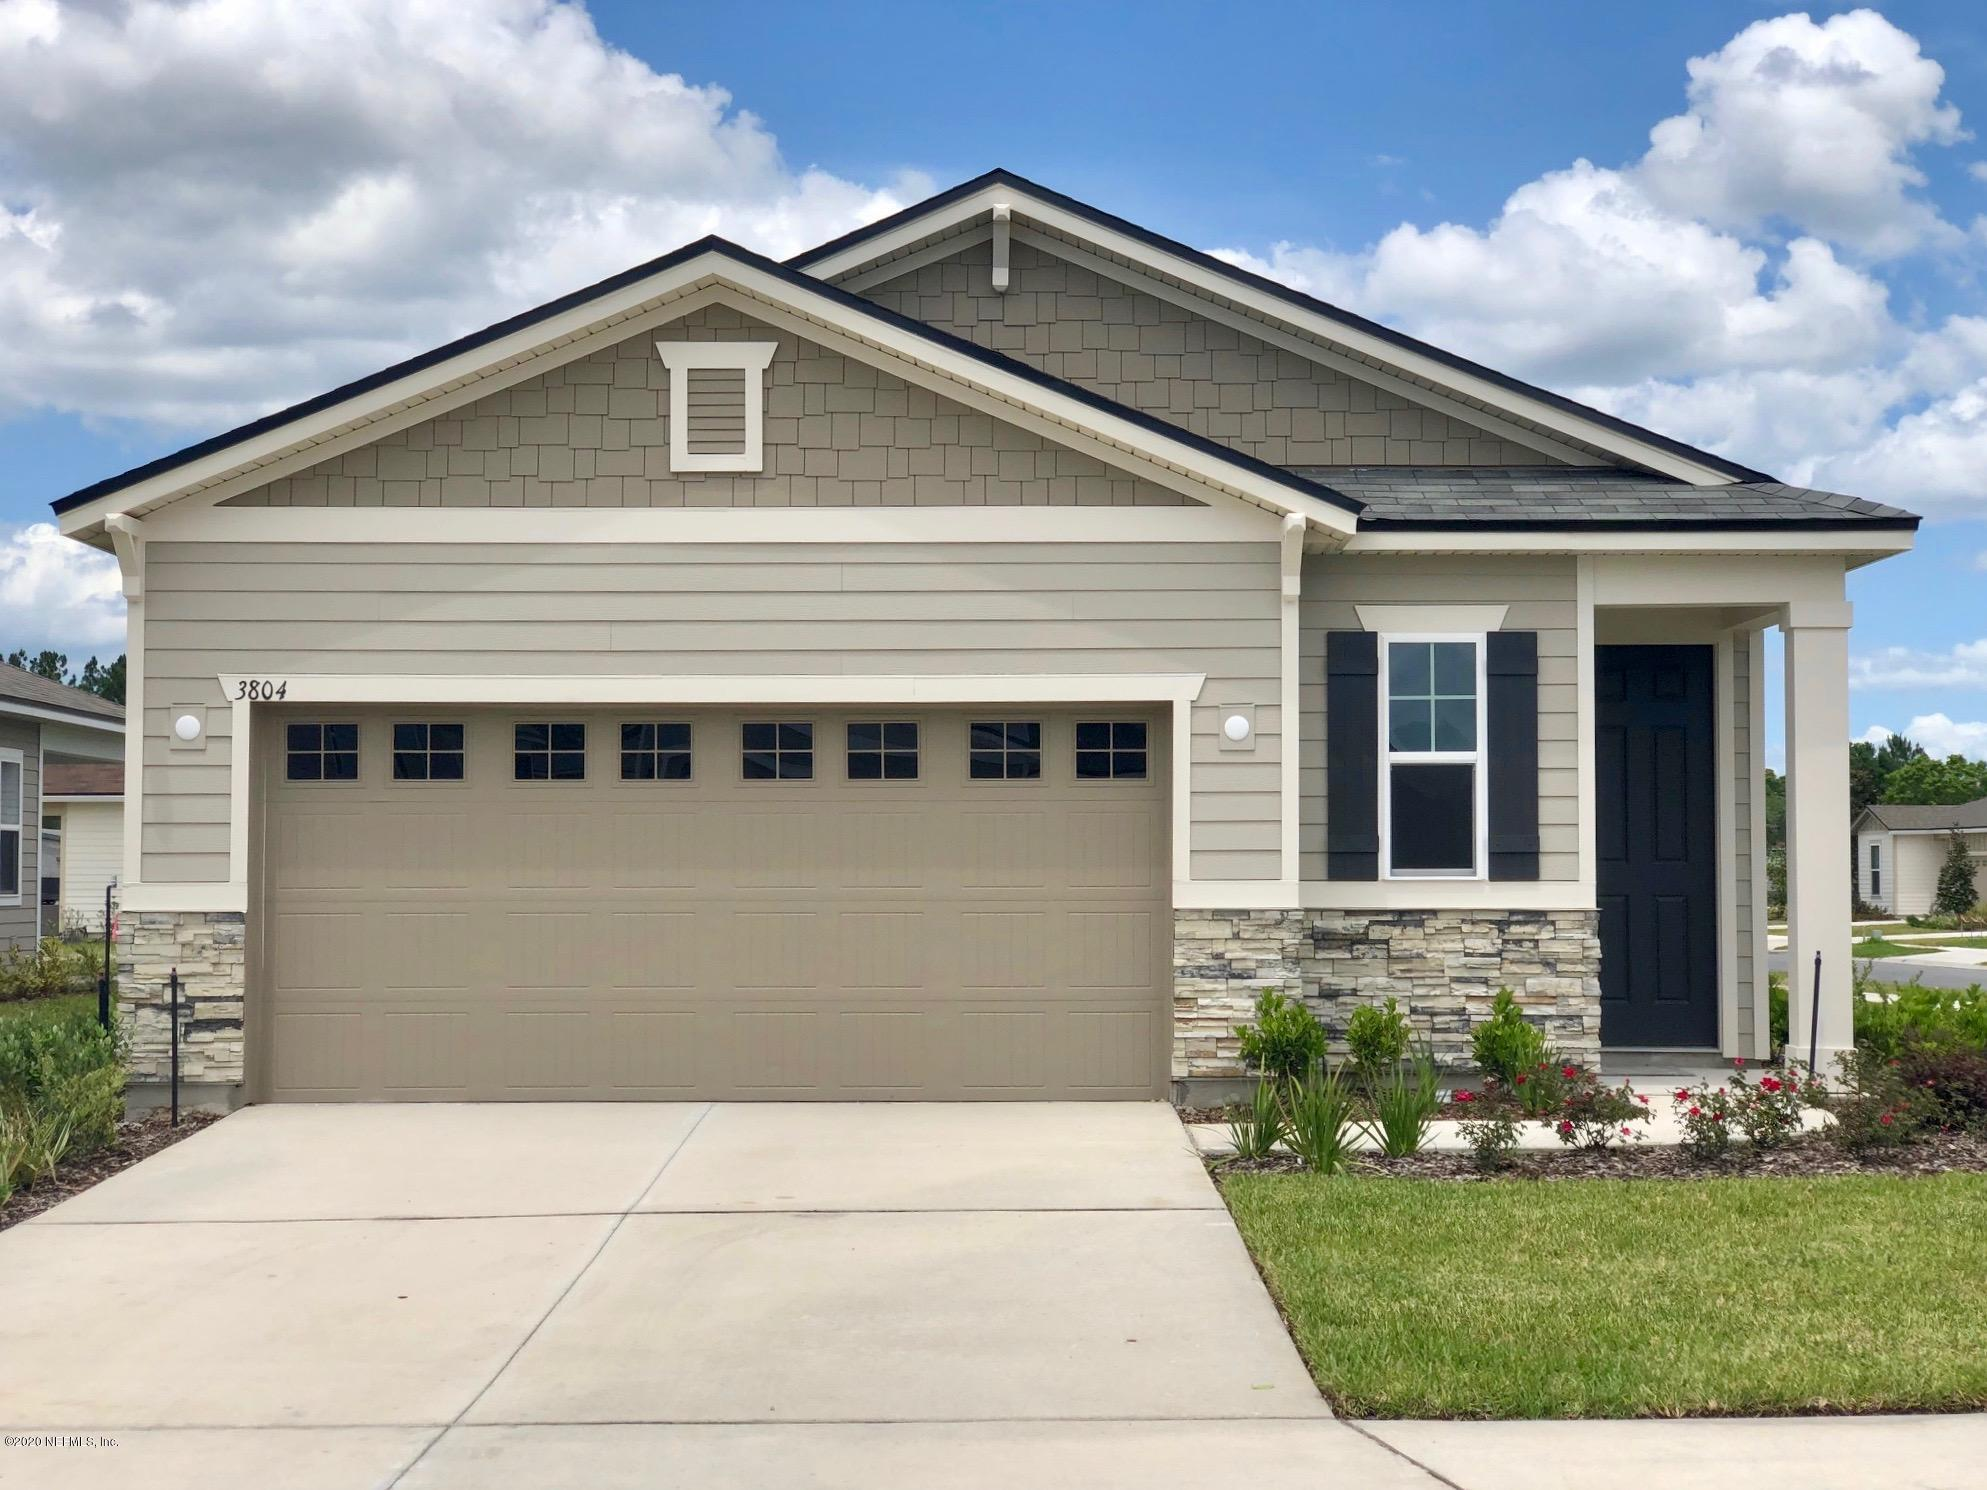 3804 SUNBERRY, MIDDLEBURG, FLORIDA 32068, 3 Bedrooms Bedrooms, ,2 BathroomsBathrooms,Residential,For sale,SUNBERRY,1041659